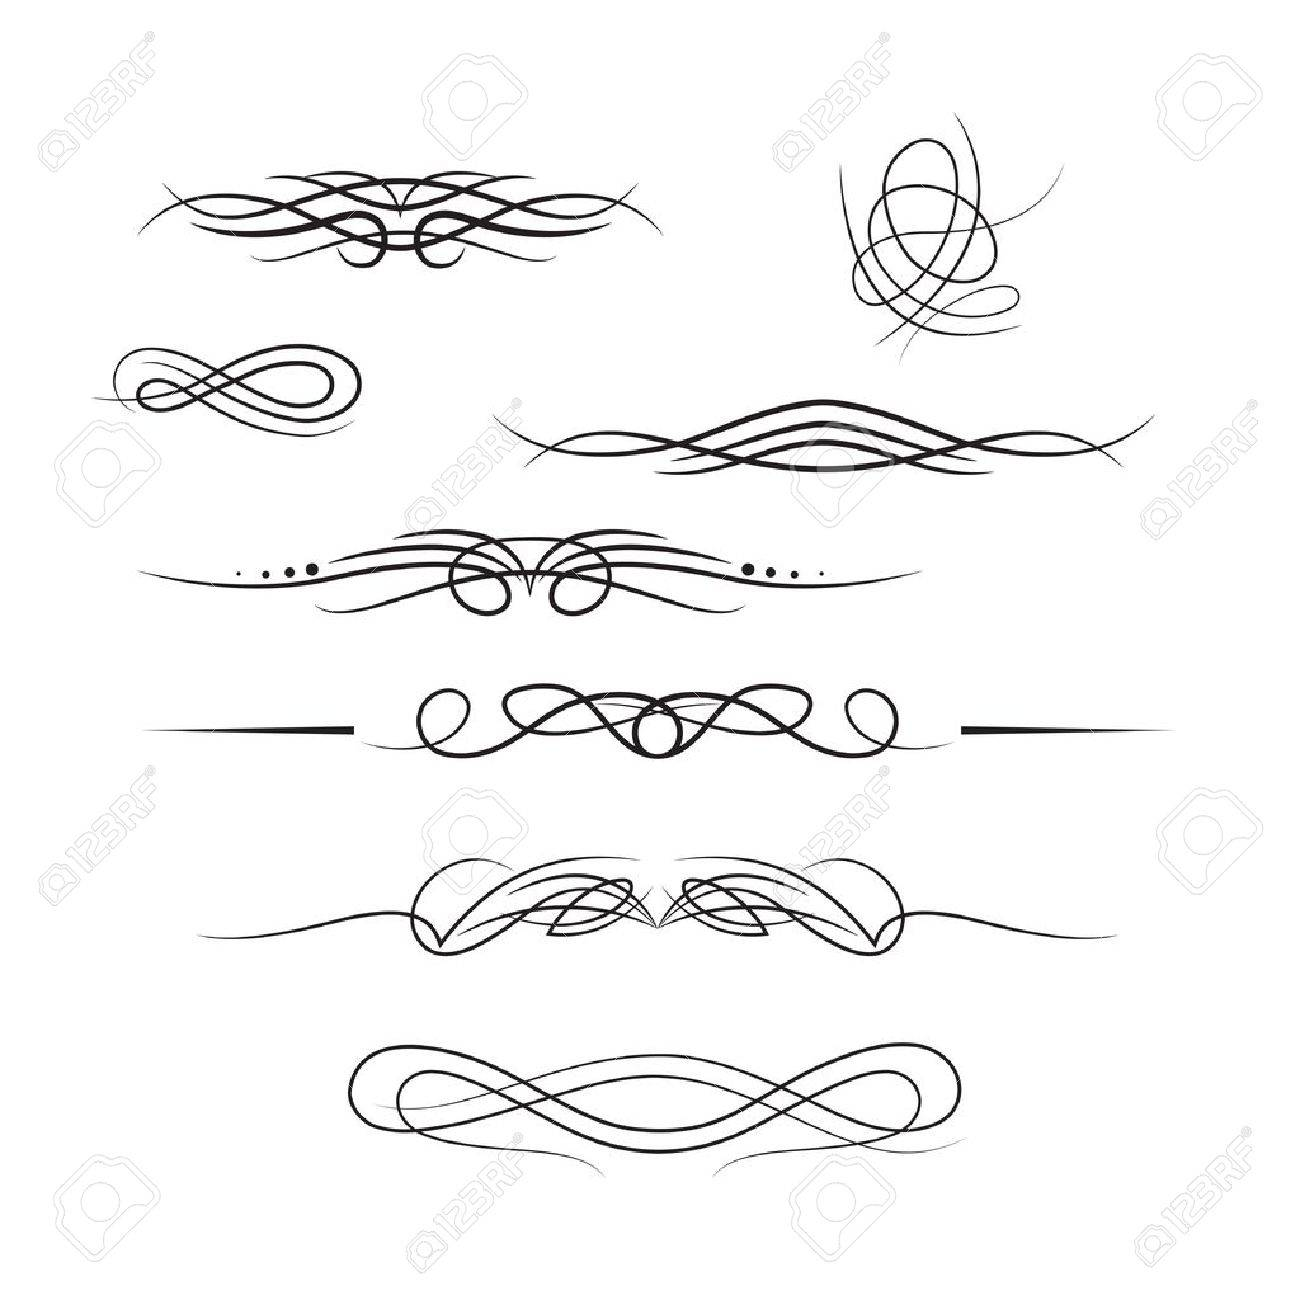 Borders and elements for design Stock Vector - 14856317